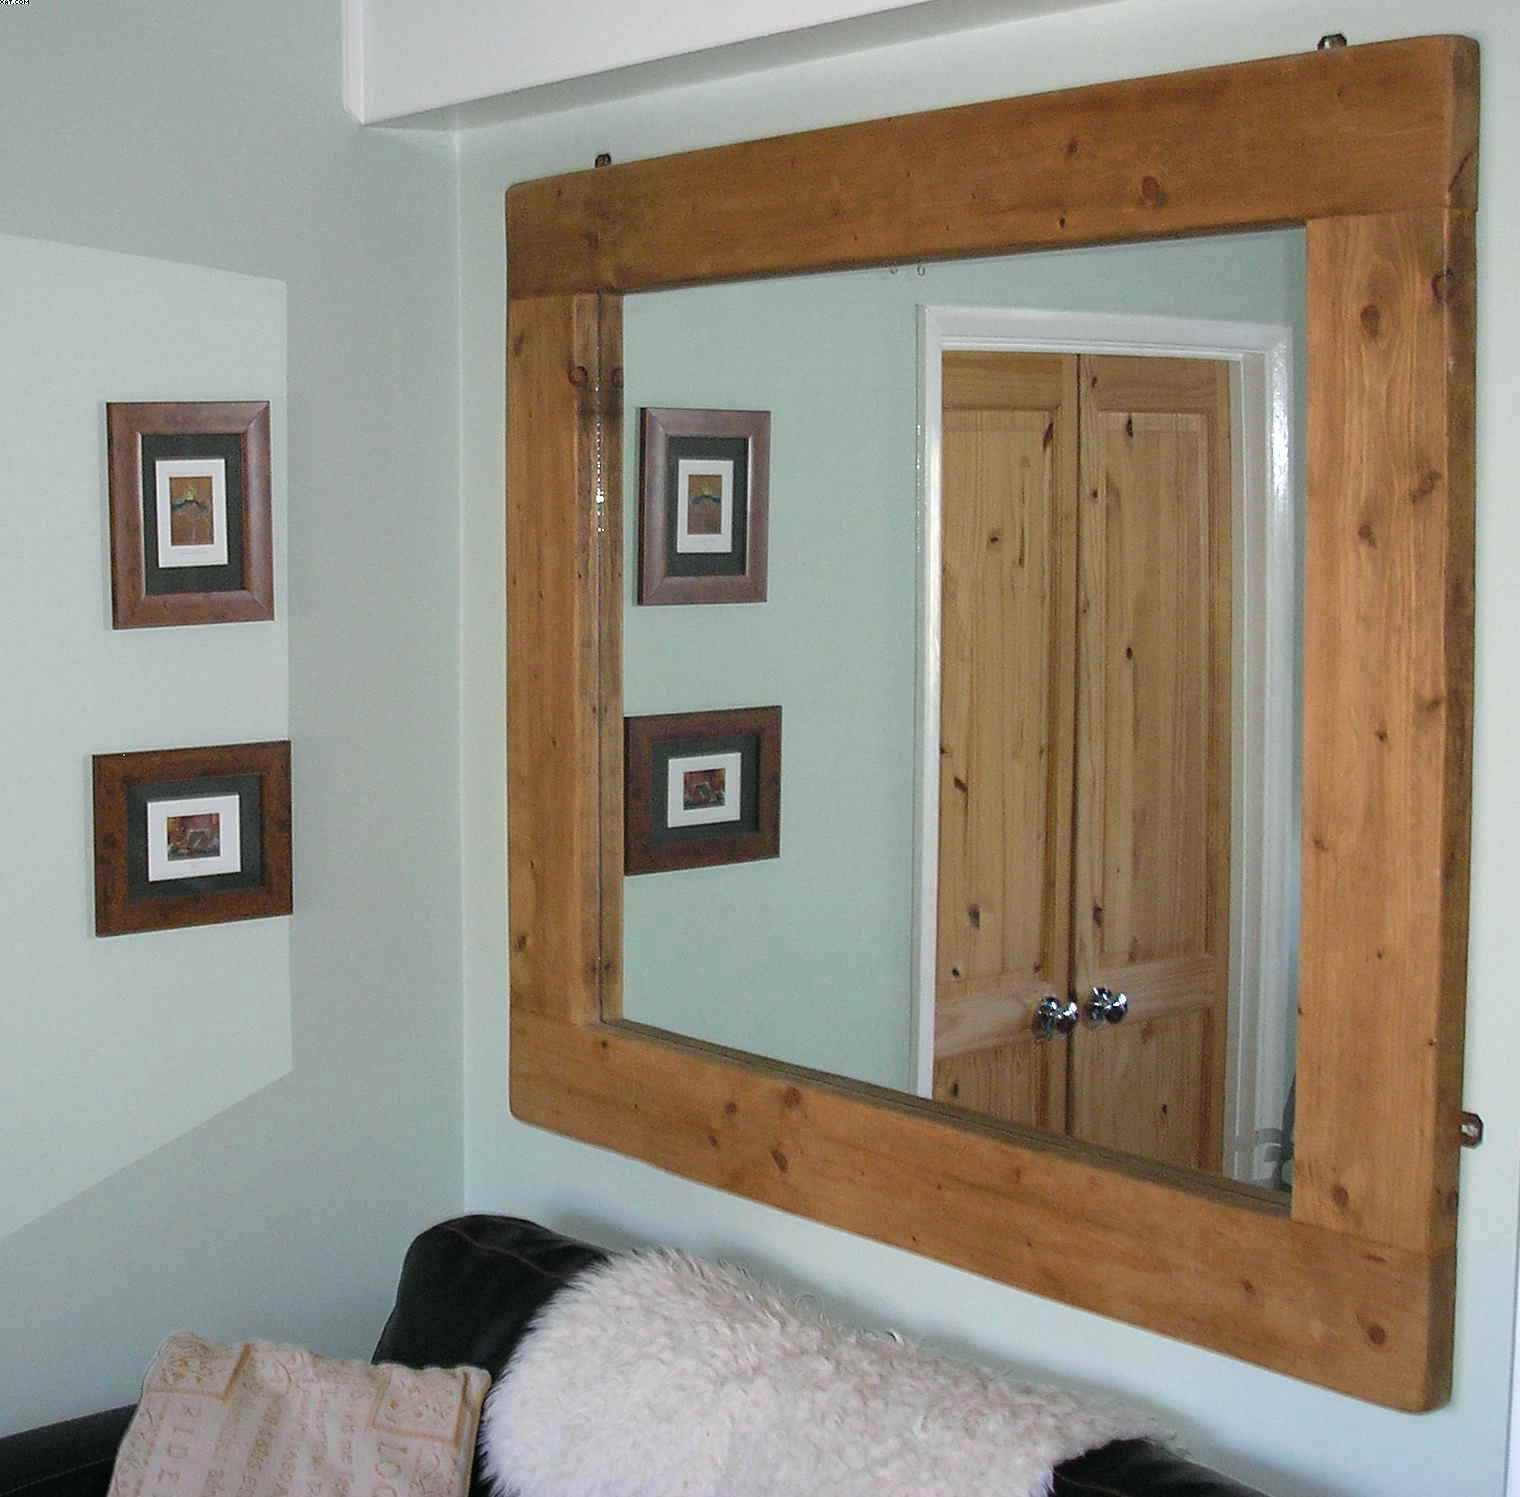 Large Square Wall Mirror – Shopwiz within Square Wall Mirrors (Image 16 of 25)